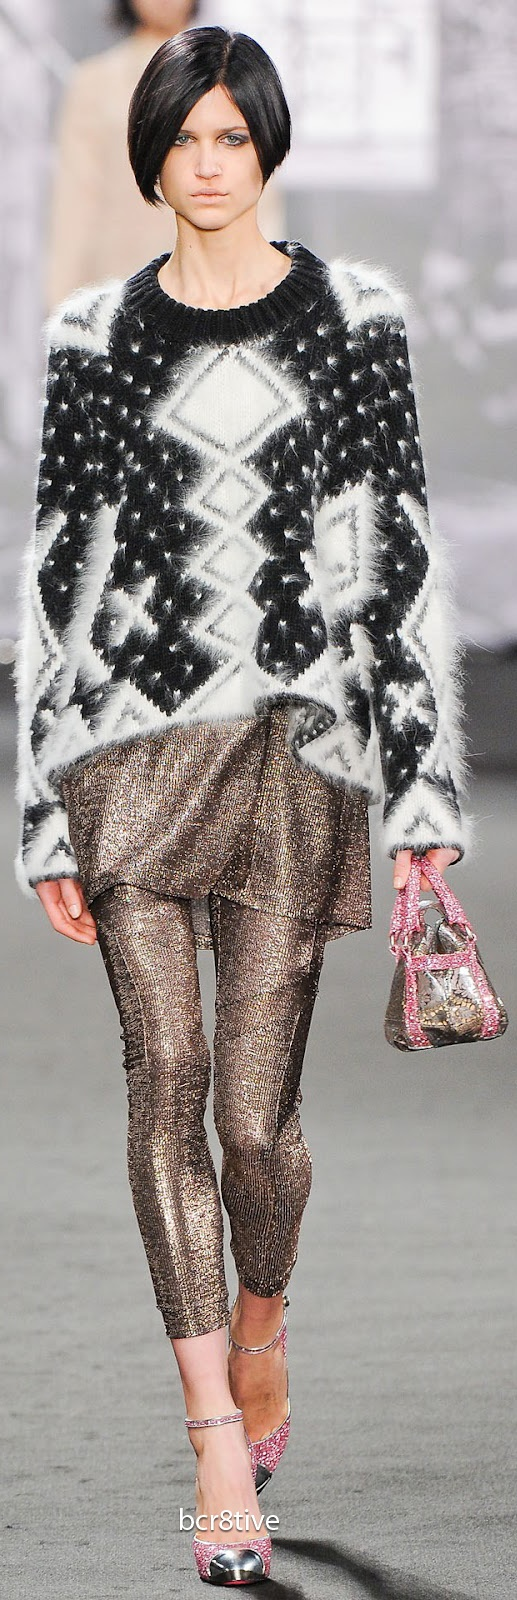 ✜ Just Cavalli Fall 2012 ✜ http://www.vogue.ru/collection/fallwinter2012/ready-to-wear/milan/Just_Cavalli/collection/index.php?PAGEN_2=2